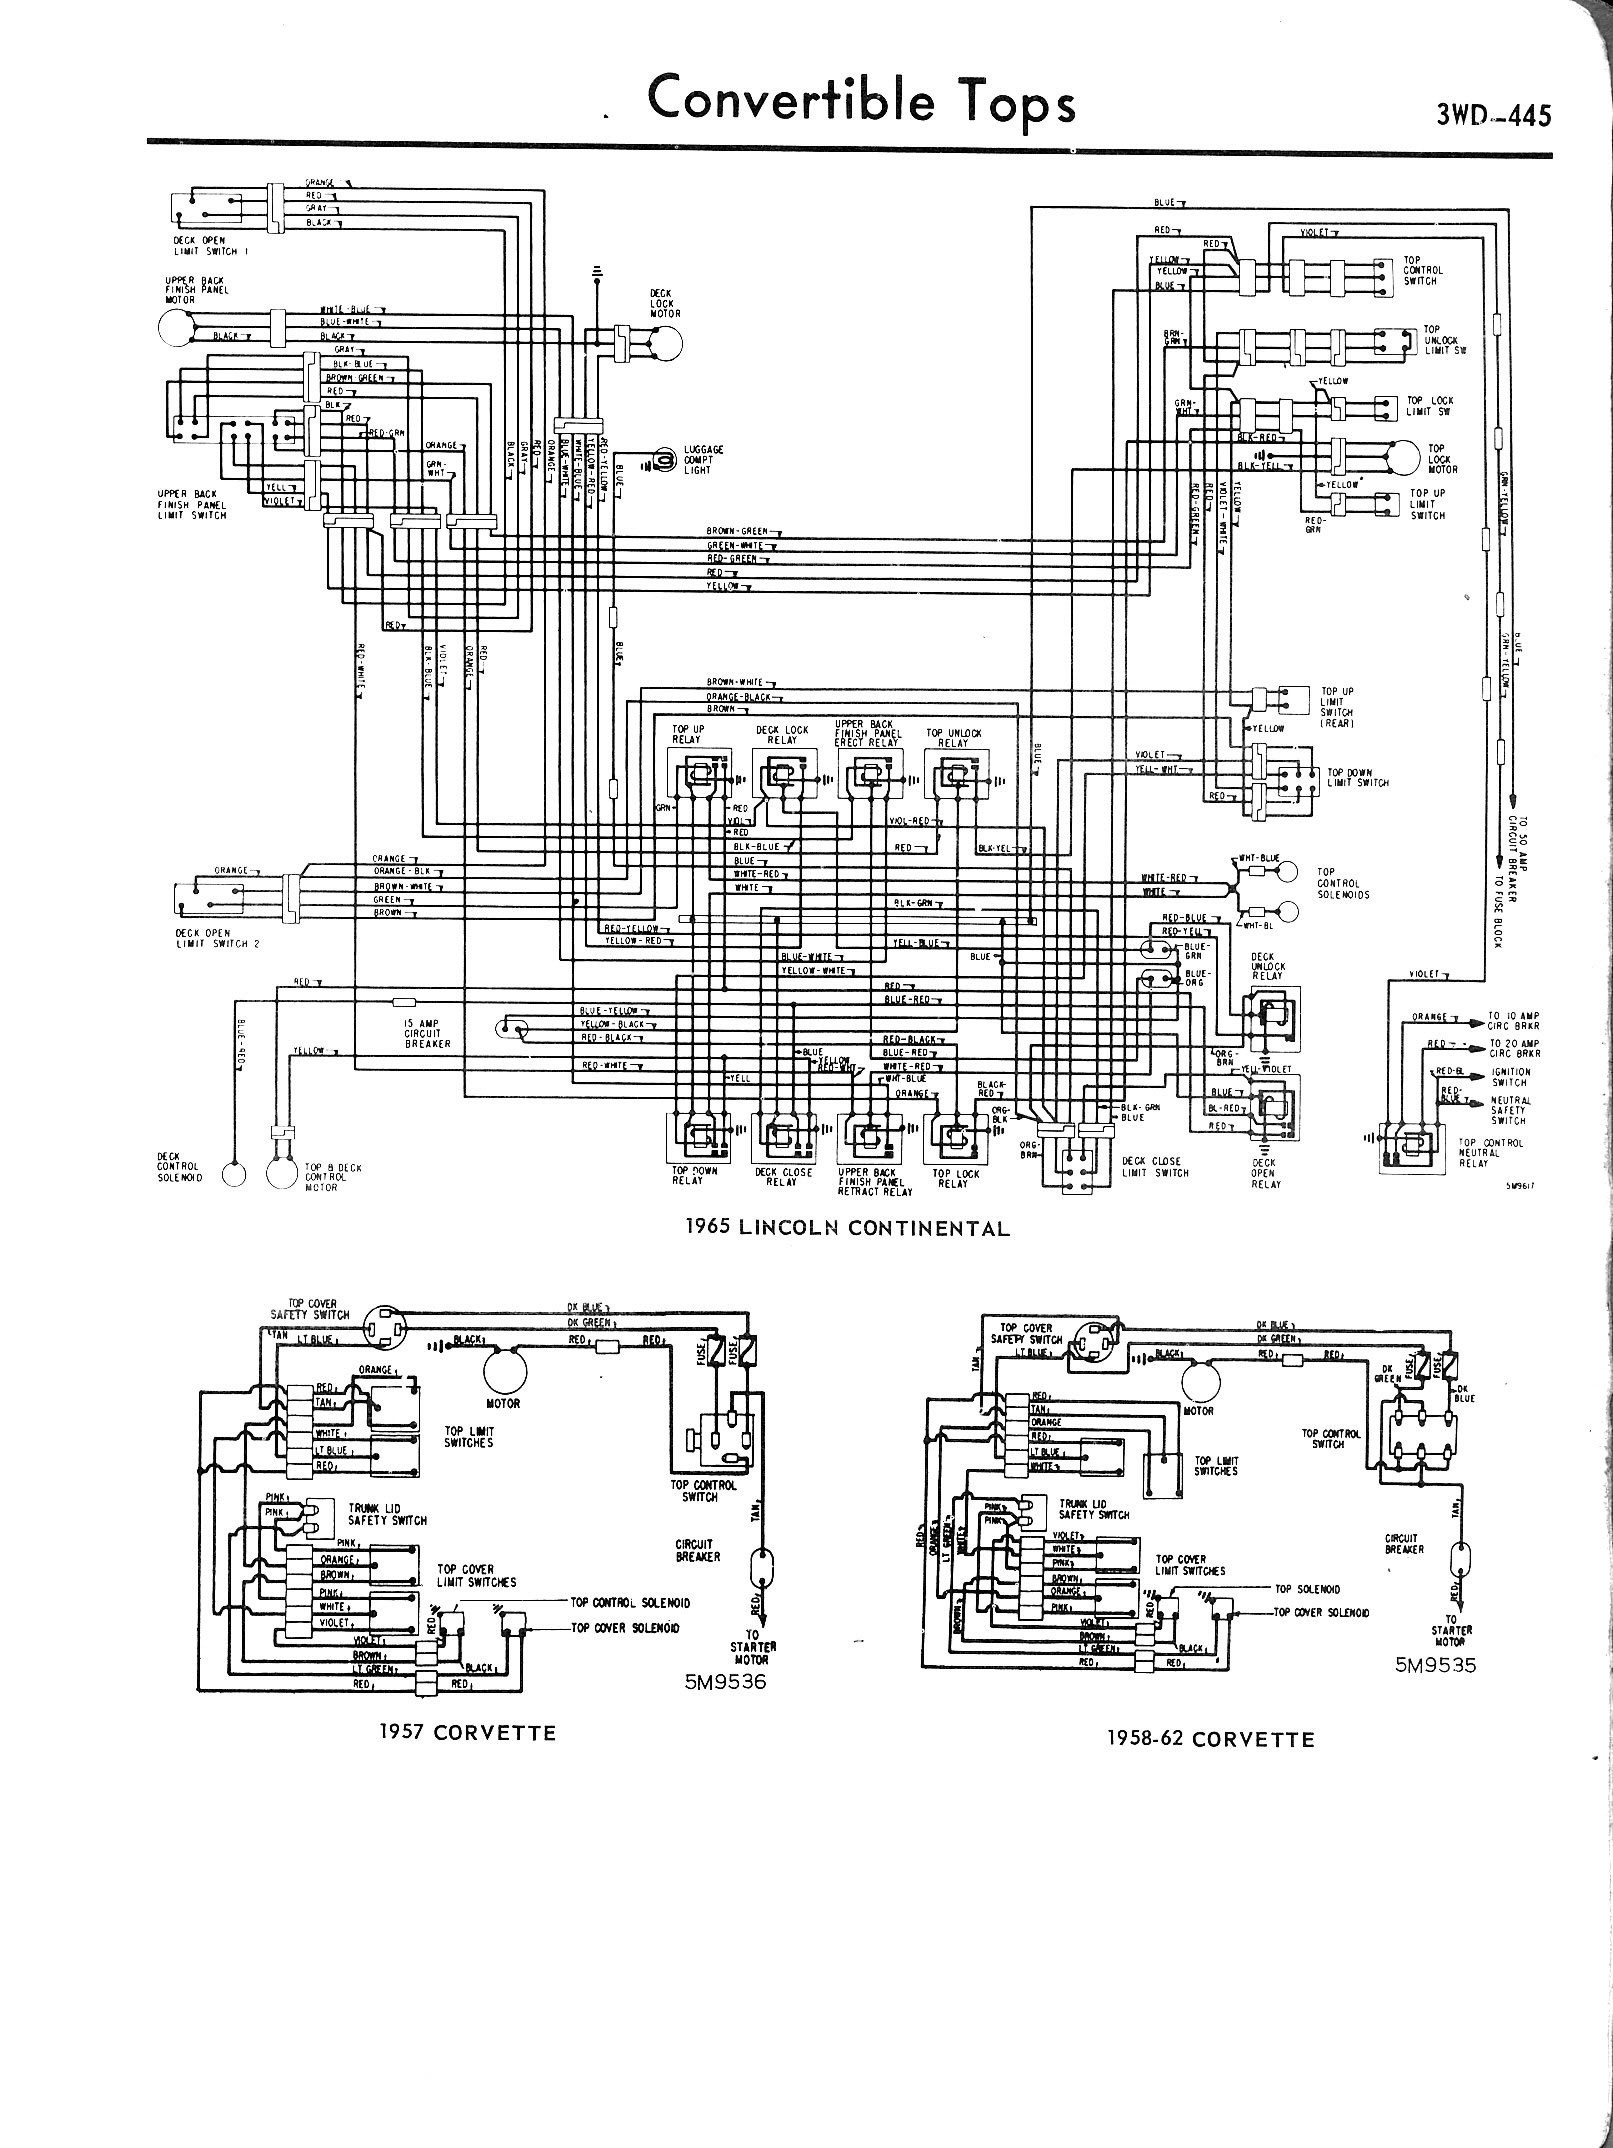 57 Chevy Coil Wiring Diagram Schematics Free Truck Convertible Top About Regulator